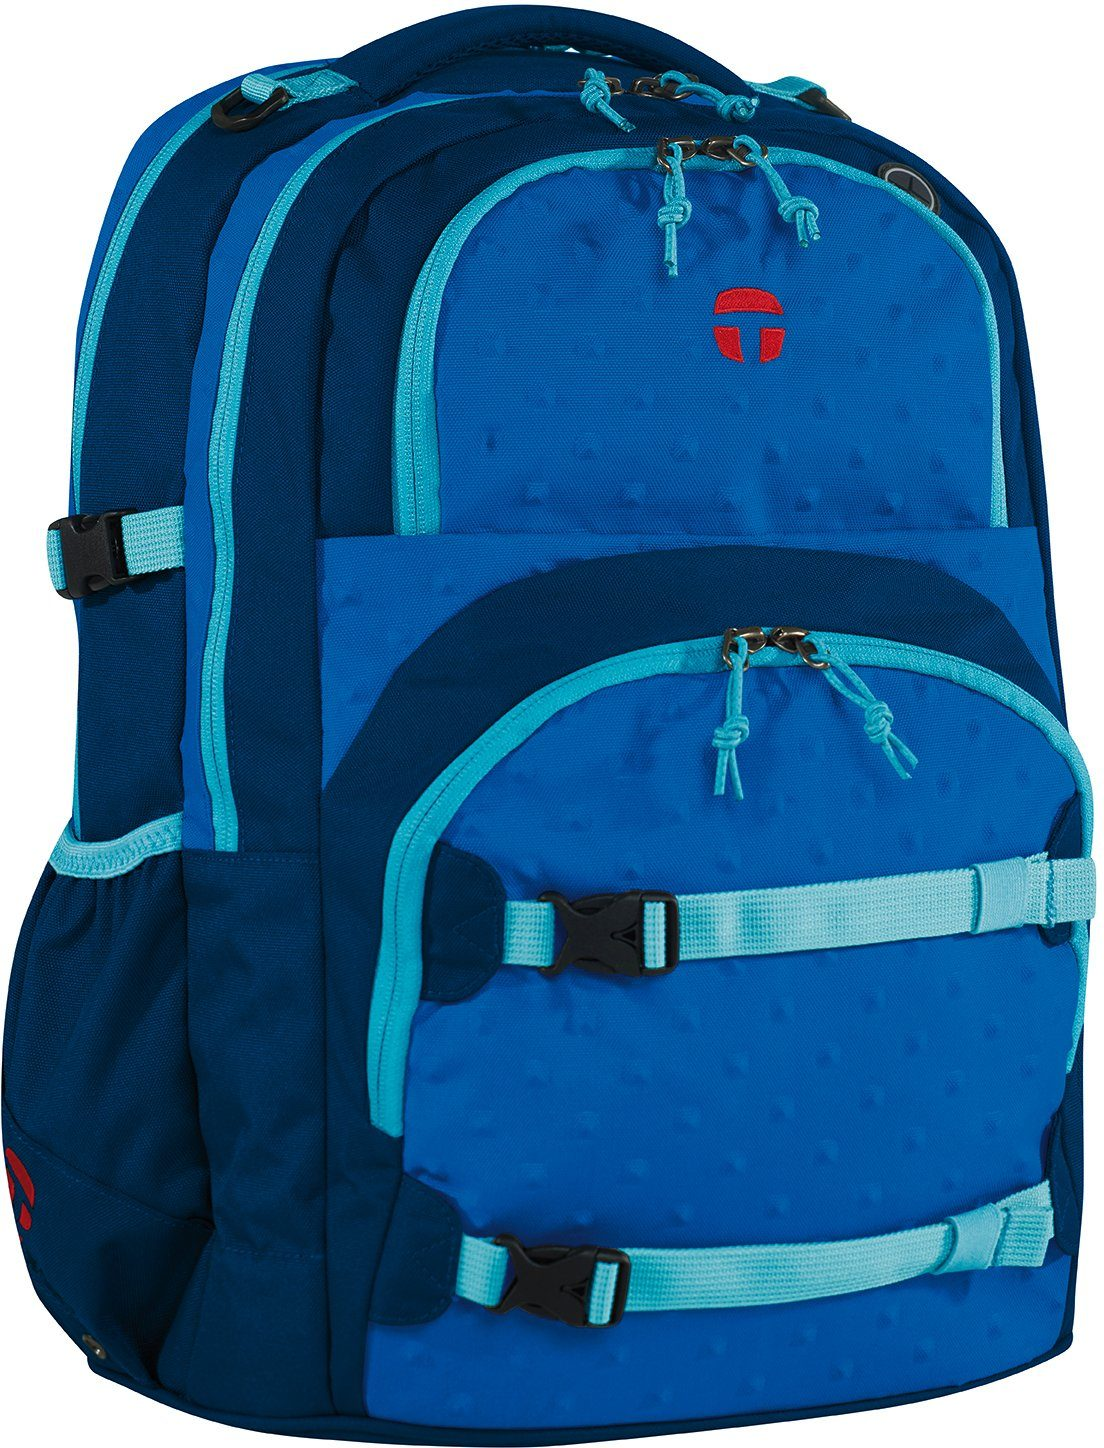 Küche Oslo Otto Take It Easy® Schulrucksack, »oslo Flex, Zoom Blue« Online